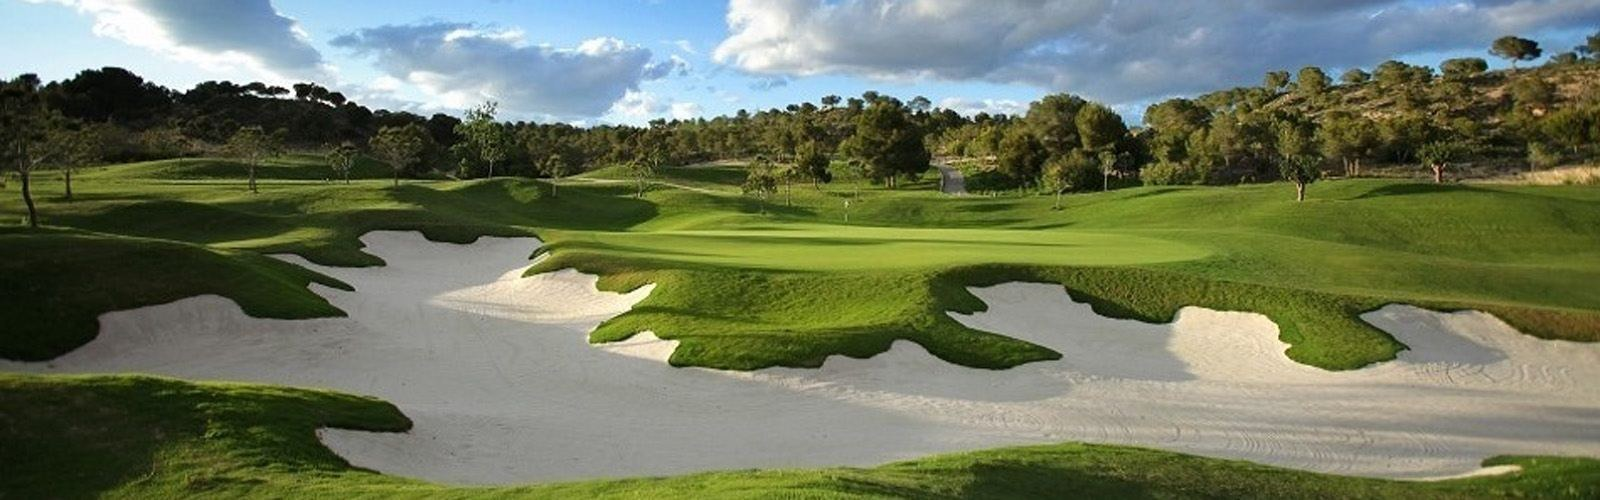 Golf Courses For Sale-Sand Traps